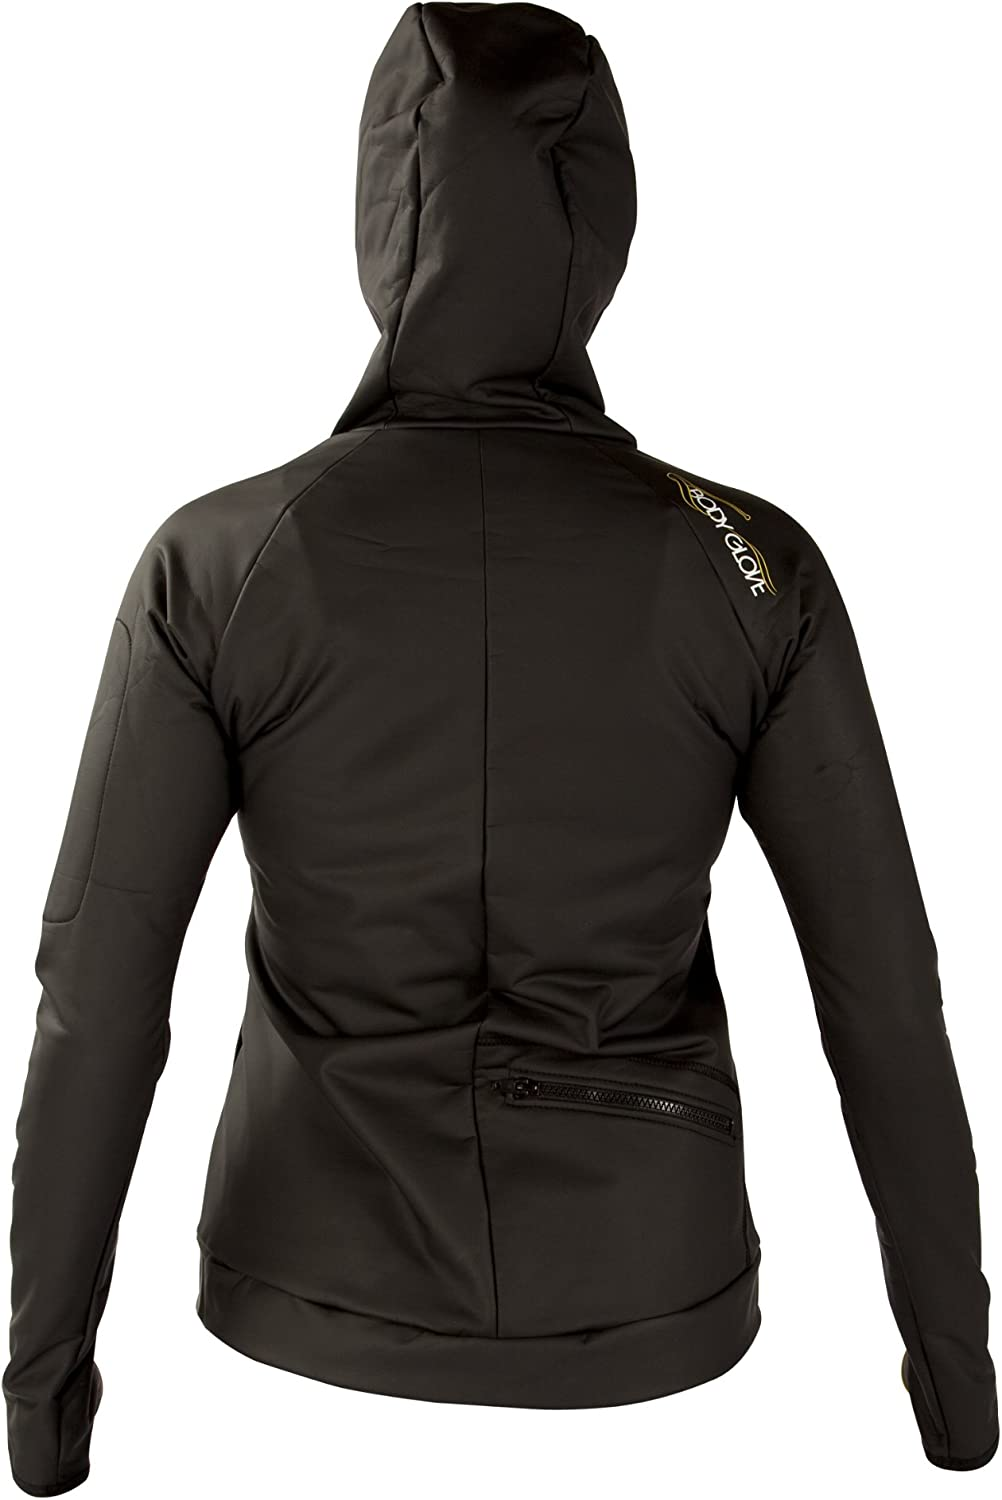 Body Glove Womens PU Coated Fleece Jacket